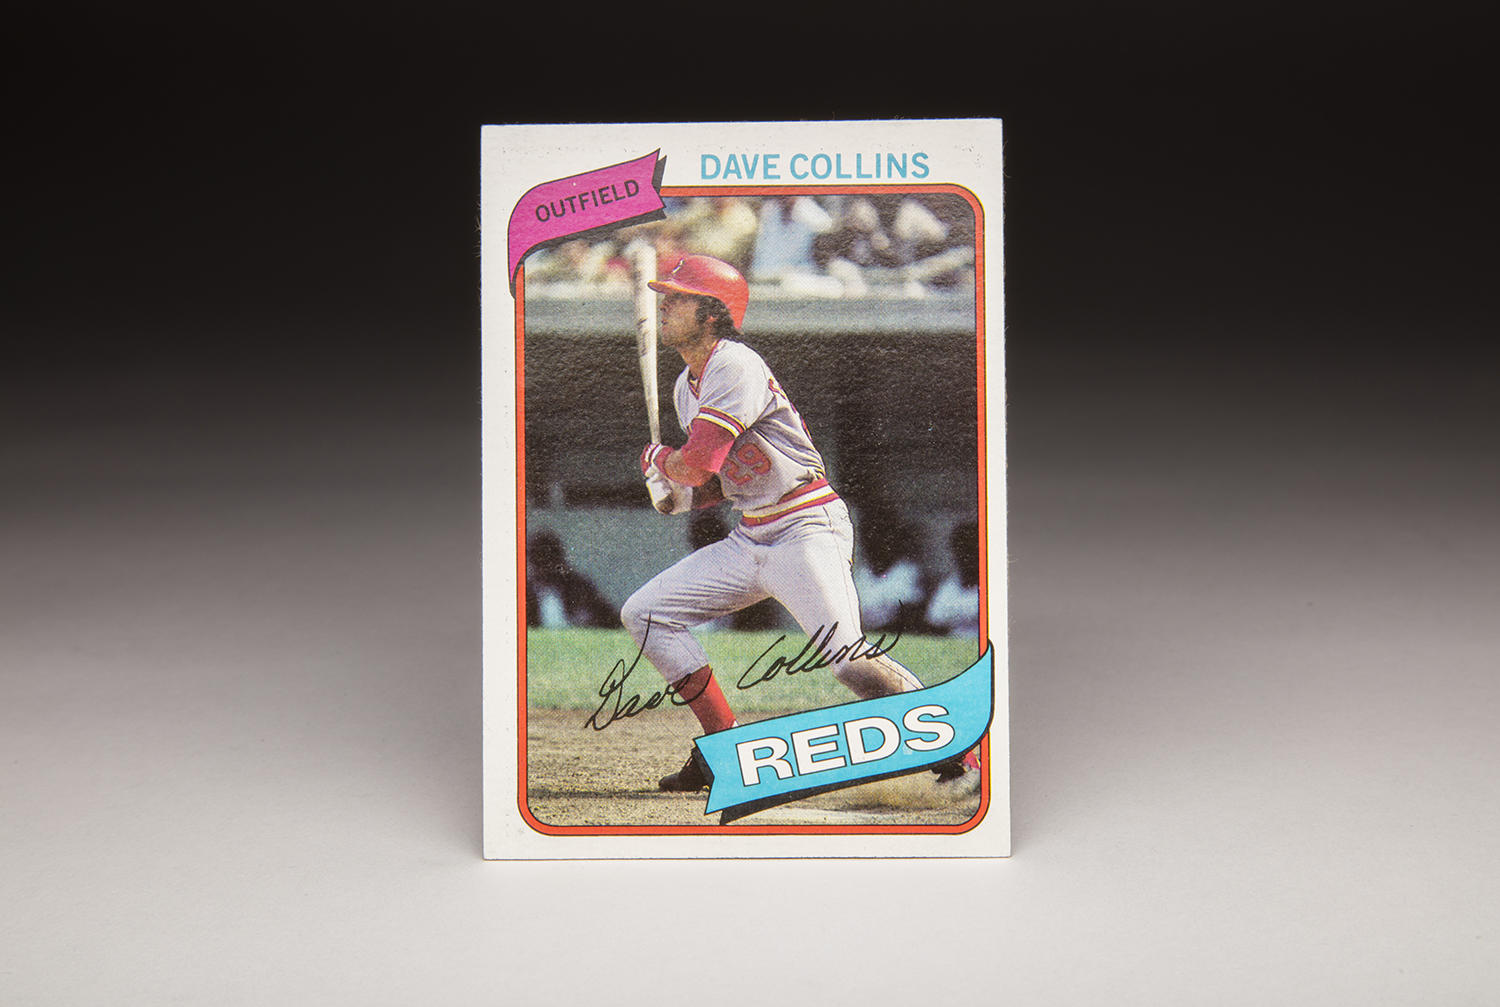 Dave Collins' 1980 Topps card depicts the full-charging, hard-hitting style of play that gave him the best years of his career with the Reds. (Milo Stewart Jr. / National Baseball Hall of Fame)